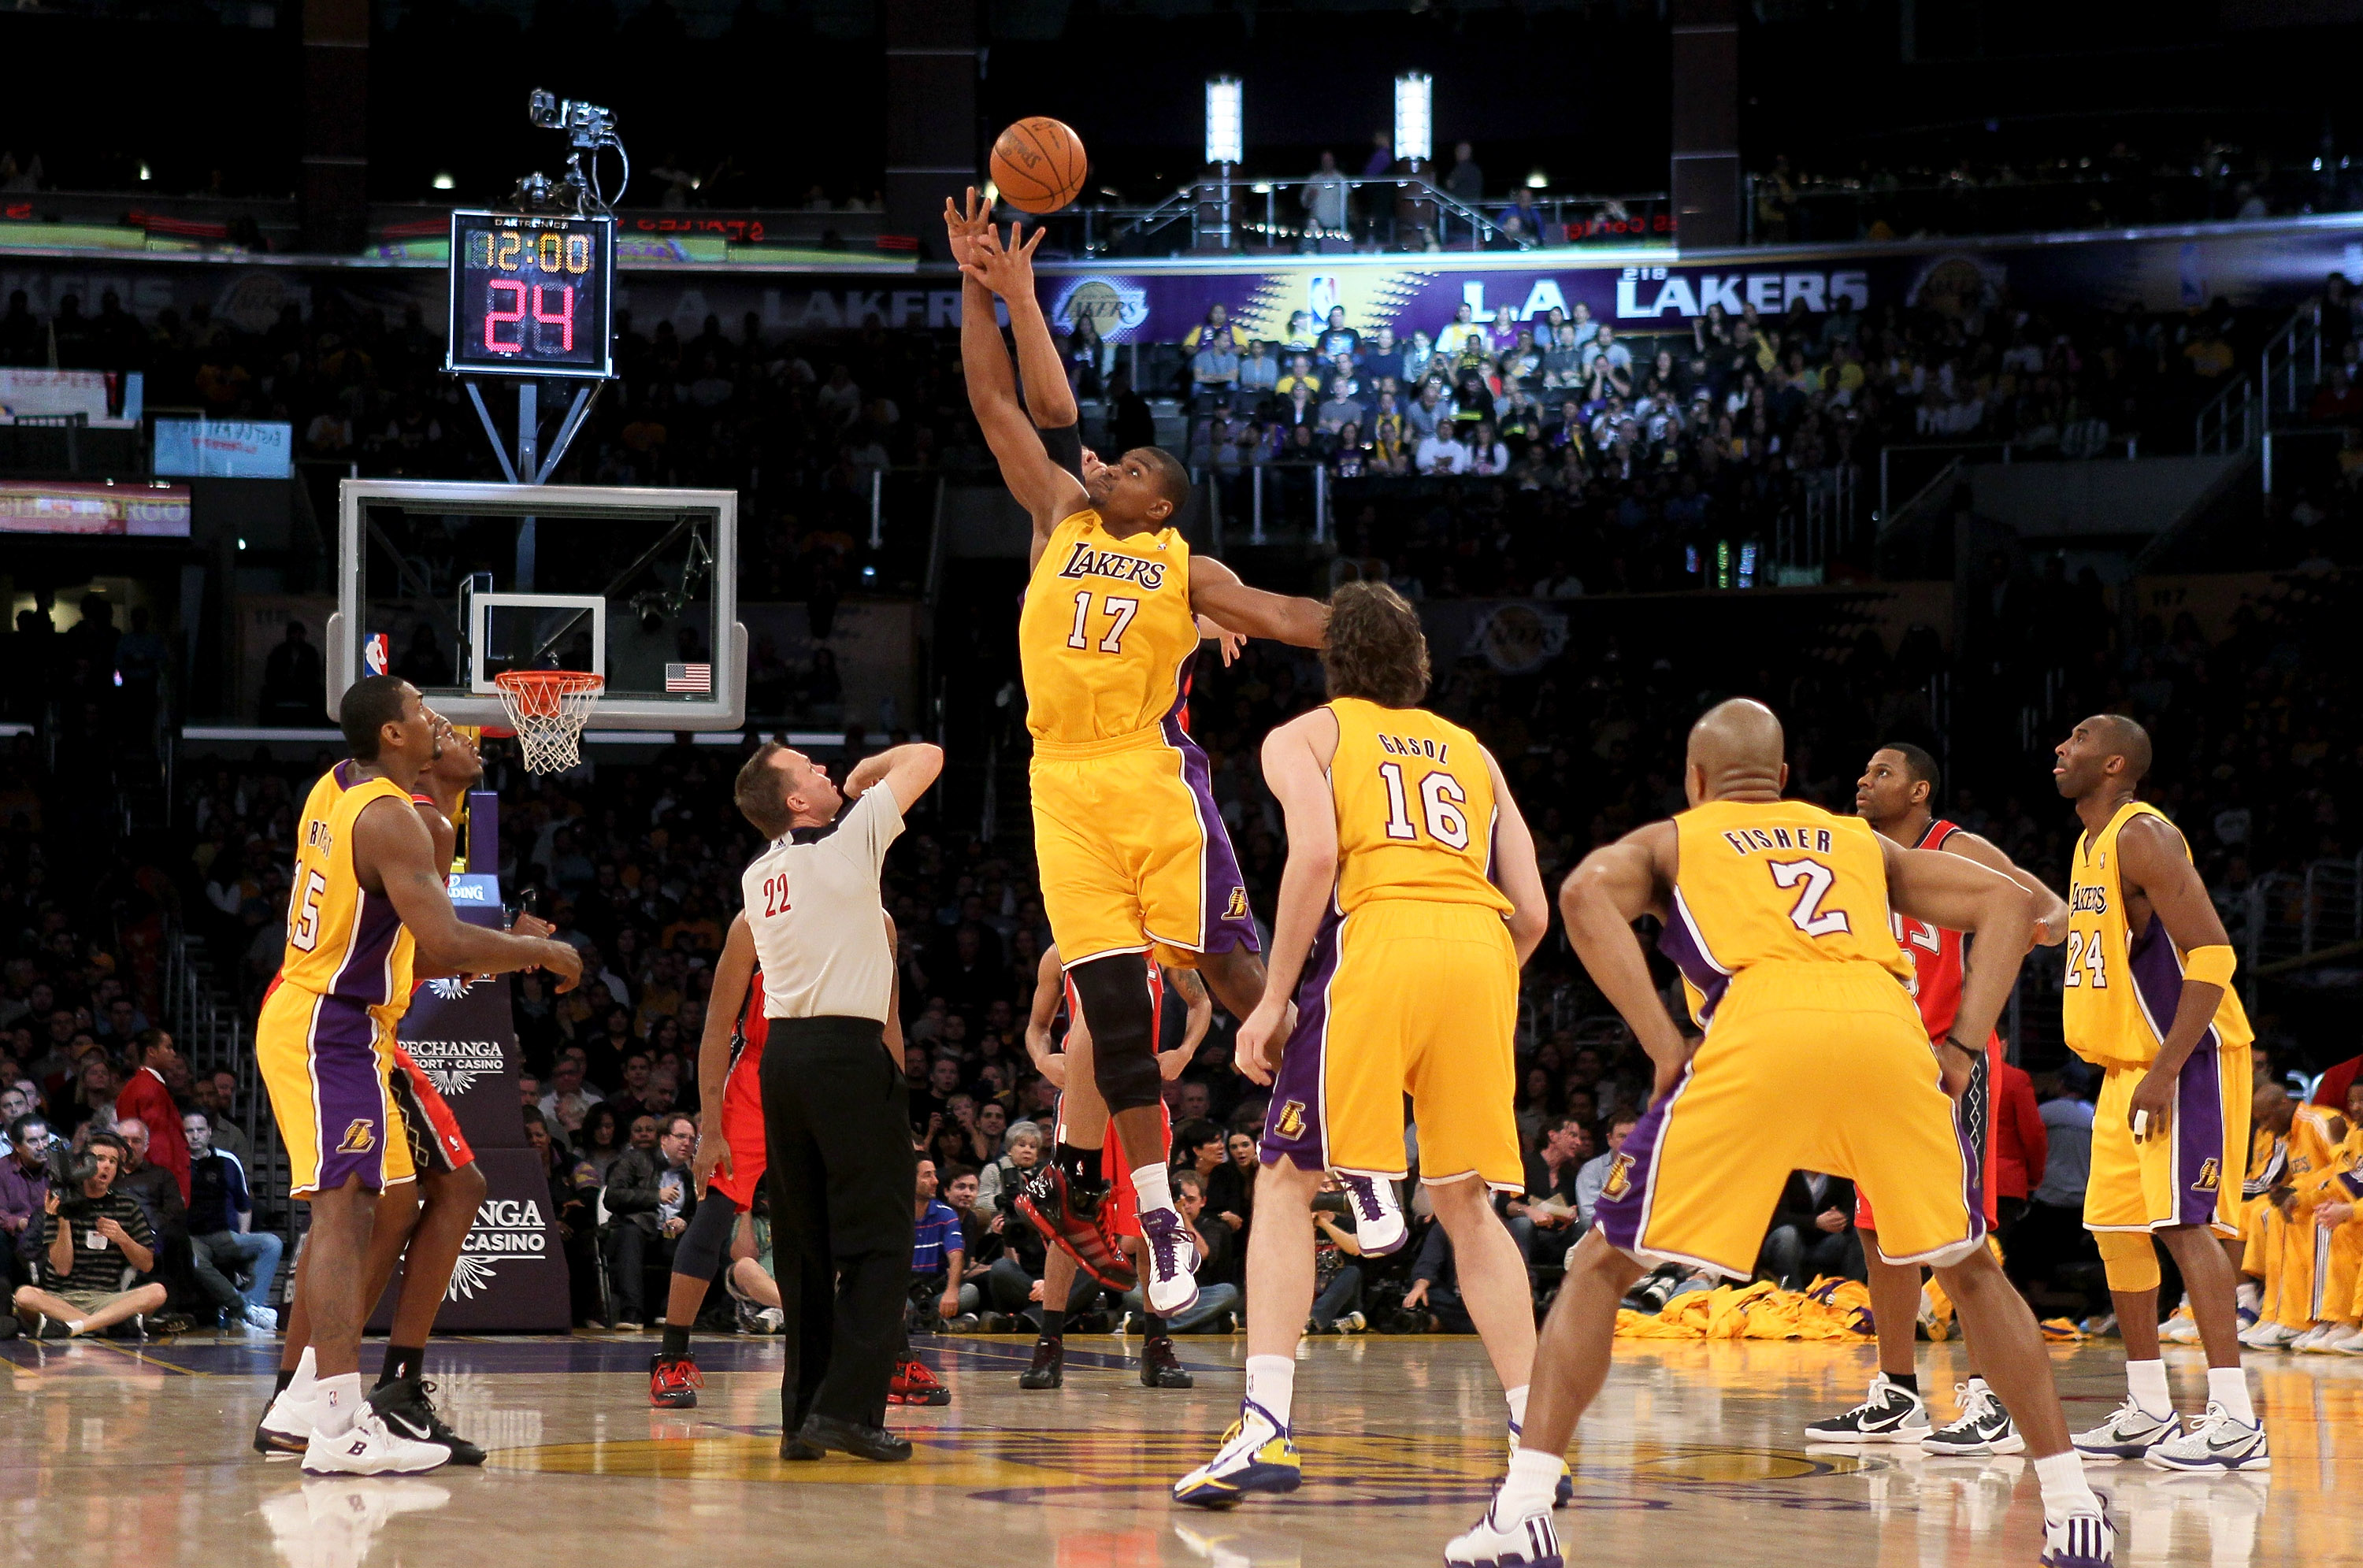 LOS ANGELES, CA - JANUARY 14:  Andrew Bynum #17 of the Los Angeles Lakers jumps for the ball on the opening tip off of the game with the New Jersey Nets at Staples Center on January 14, 2011 in Los Angeles, California. The Lakers won 100-88.  NOTE TO USER